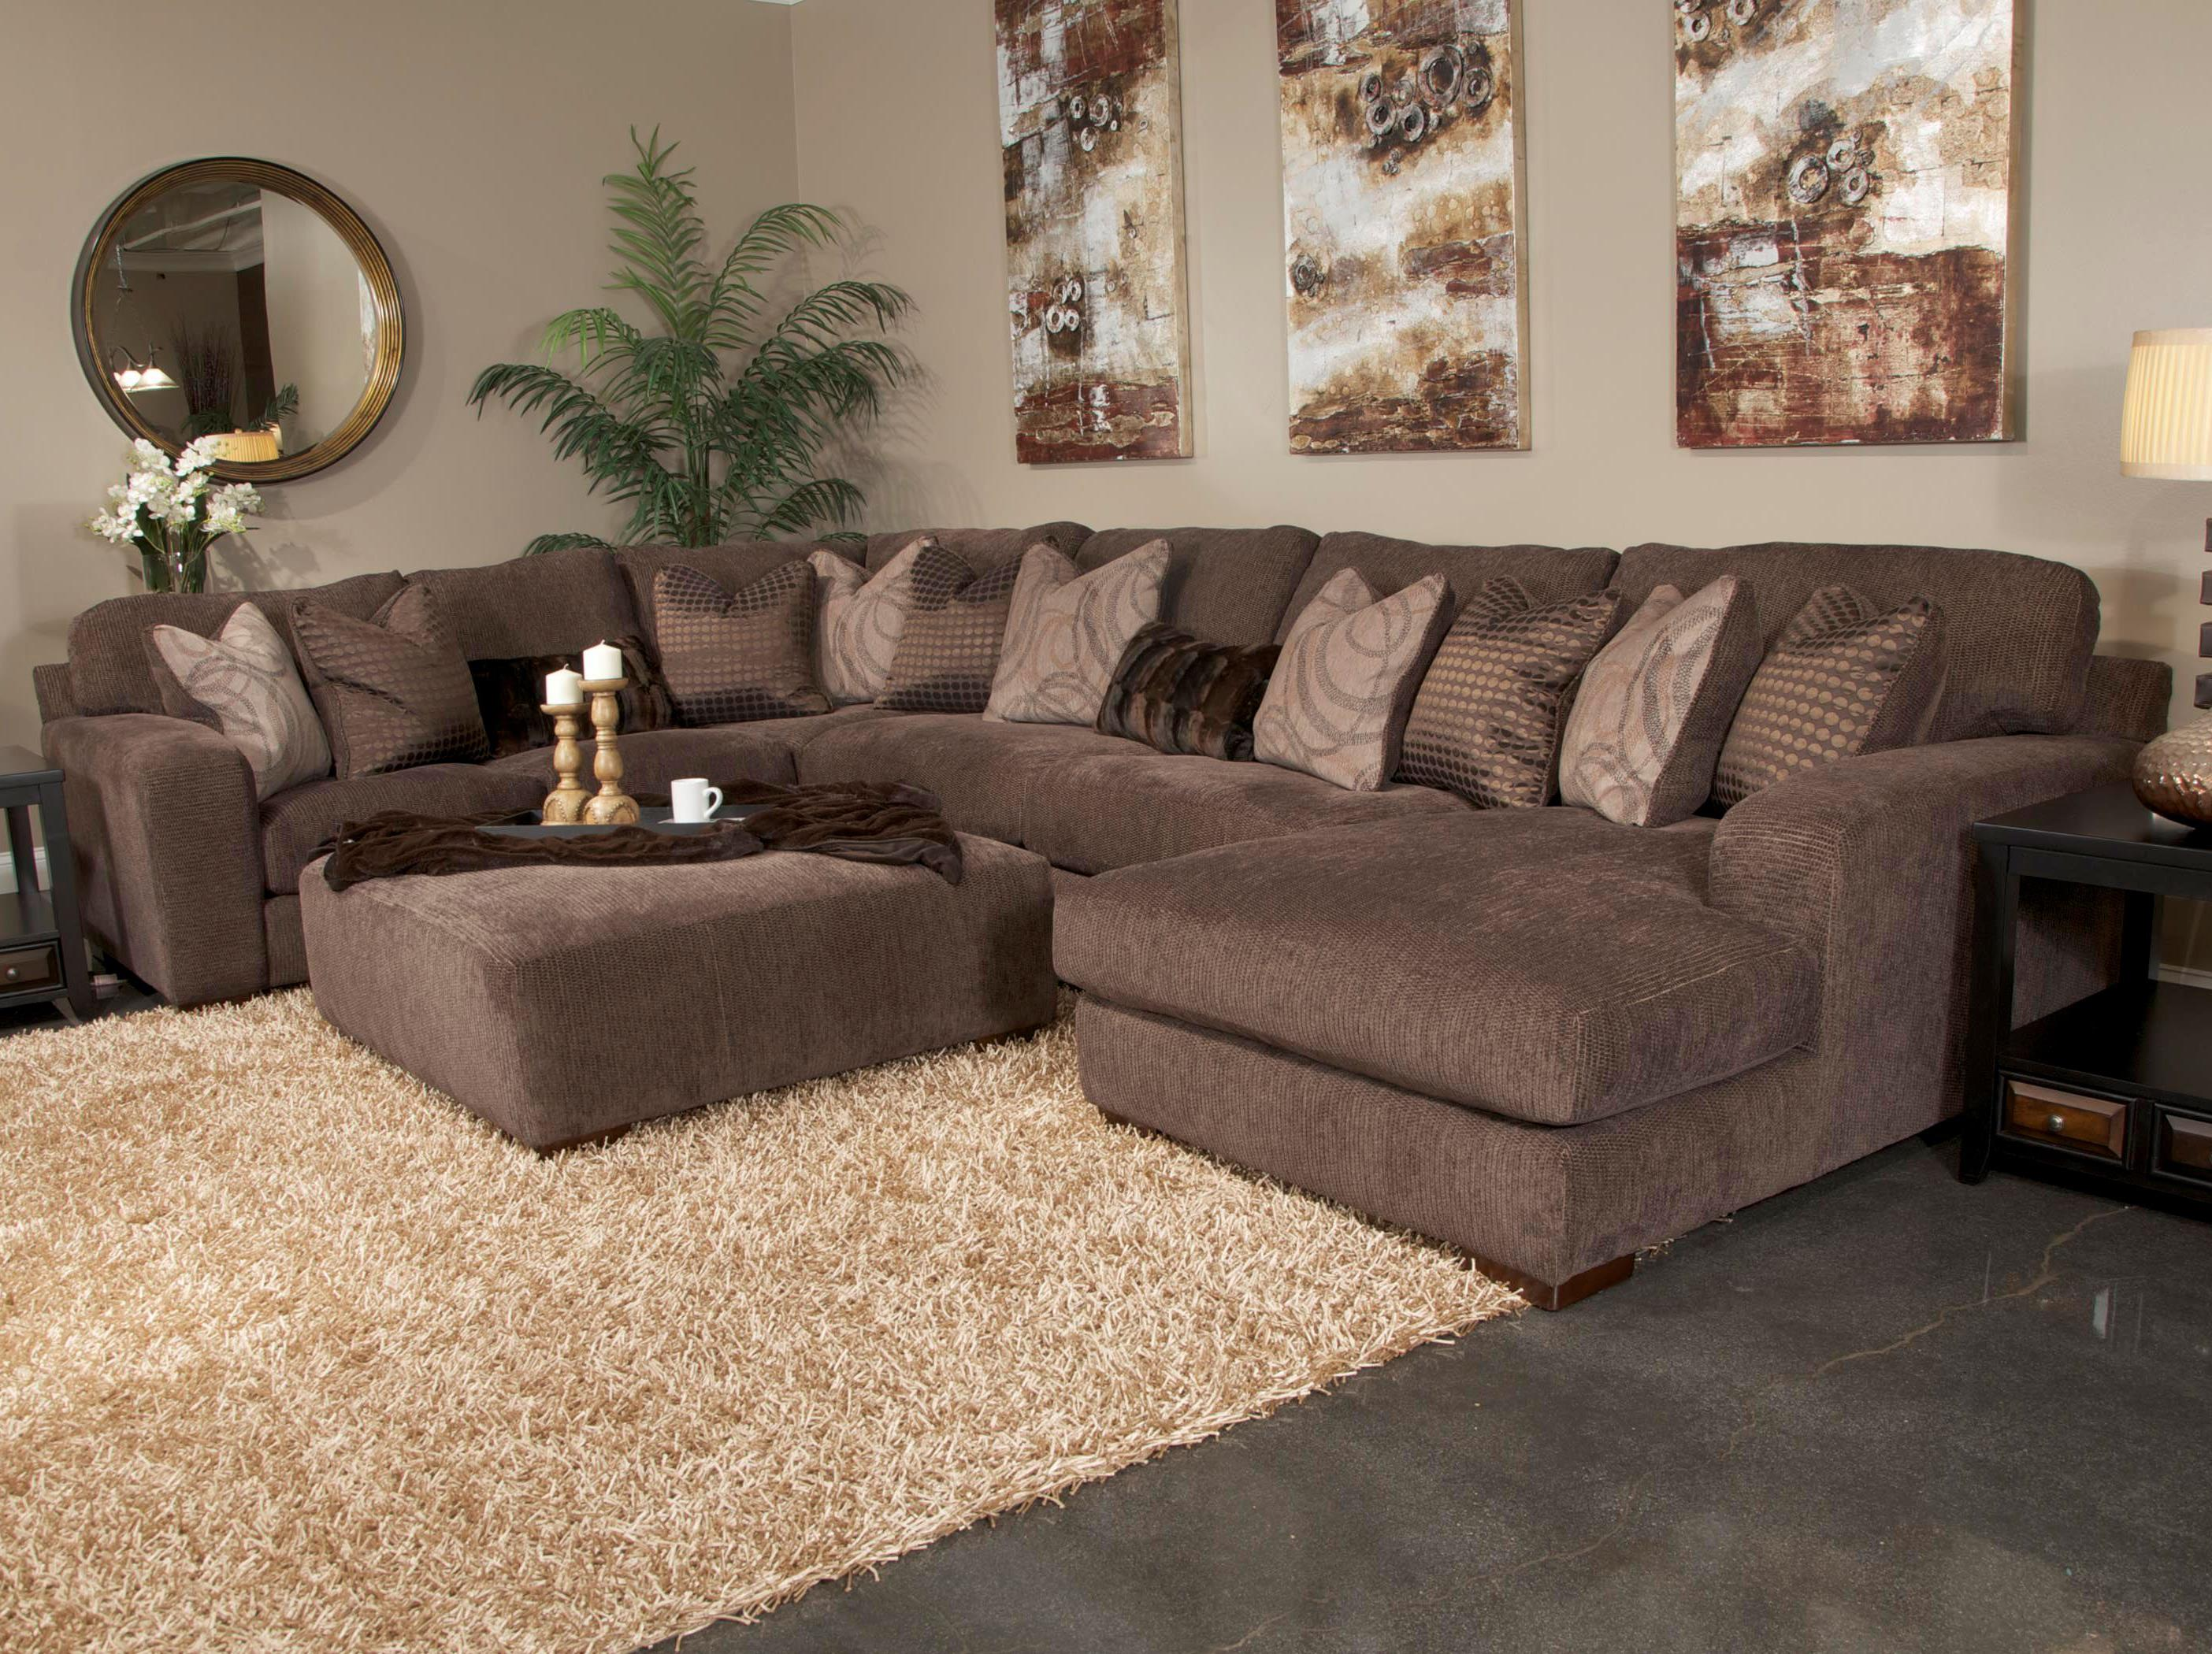 duck feather corner sofa expert serena (3276) by jackson furniture - adcock ...